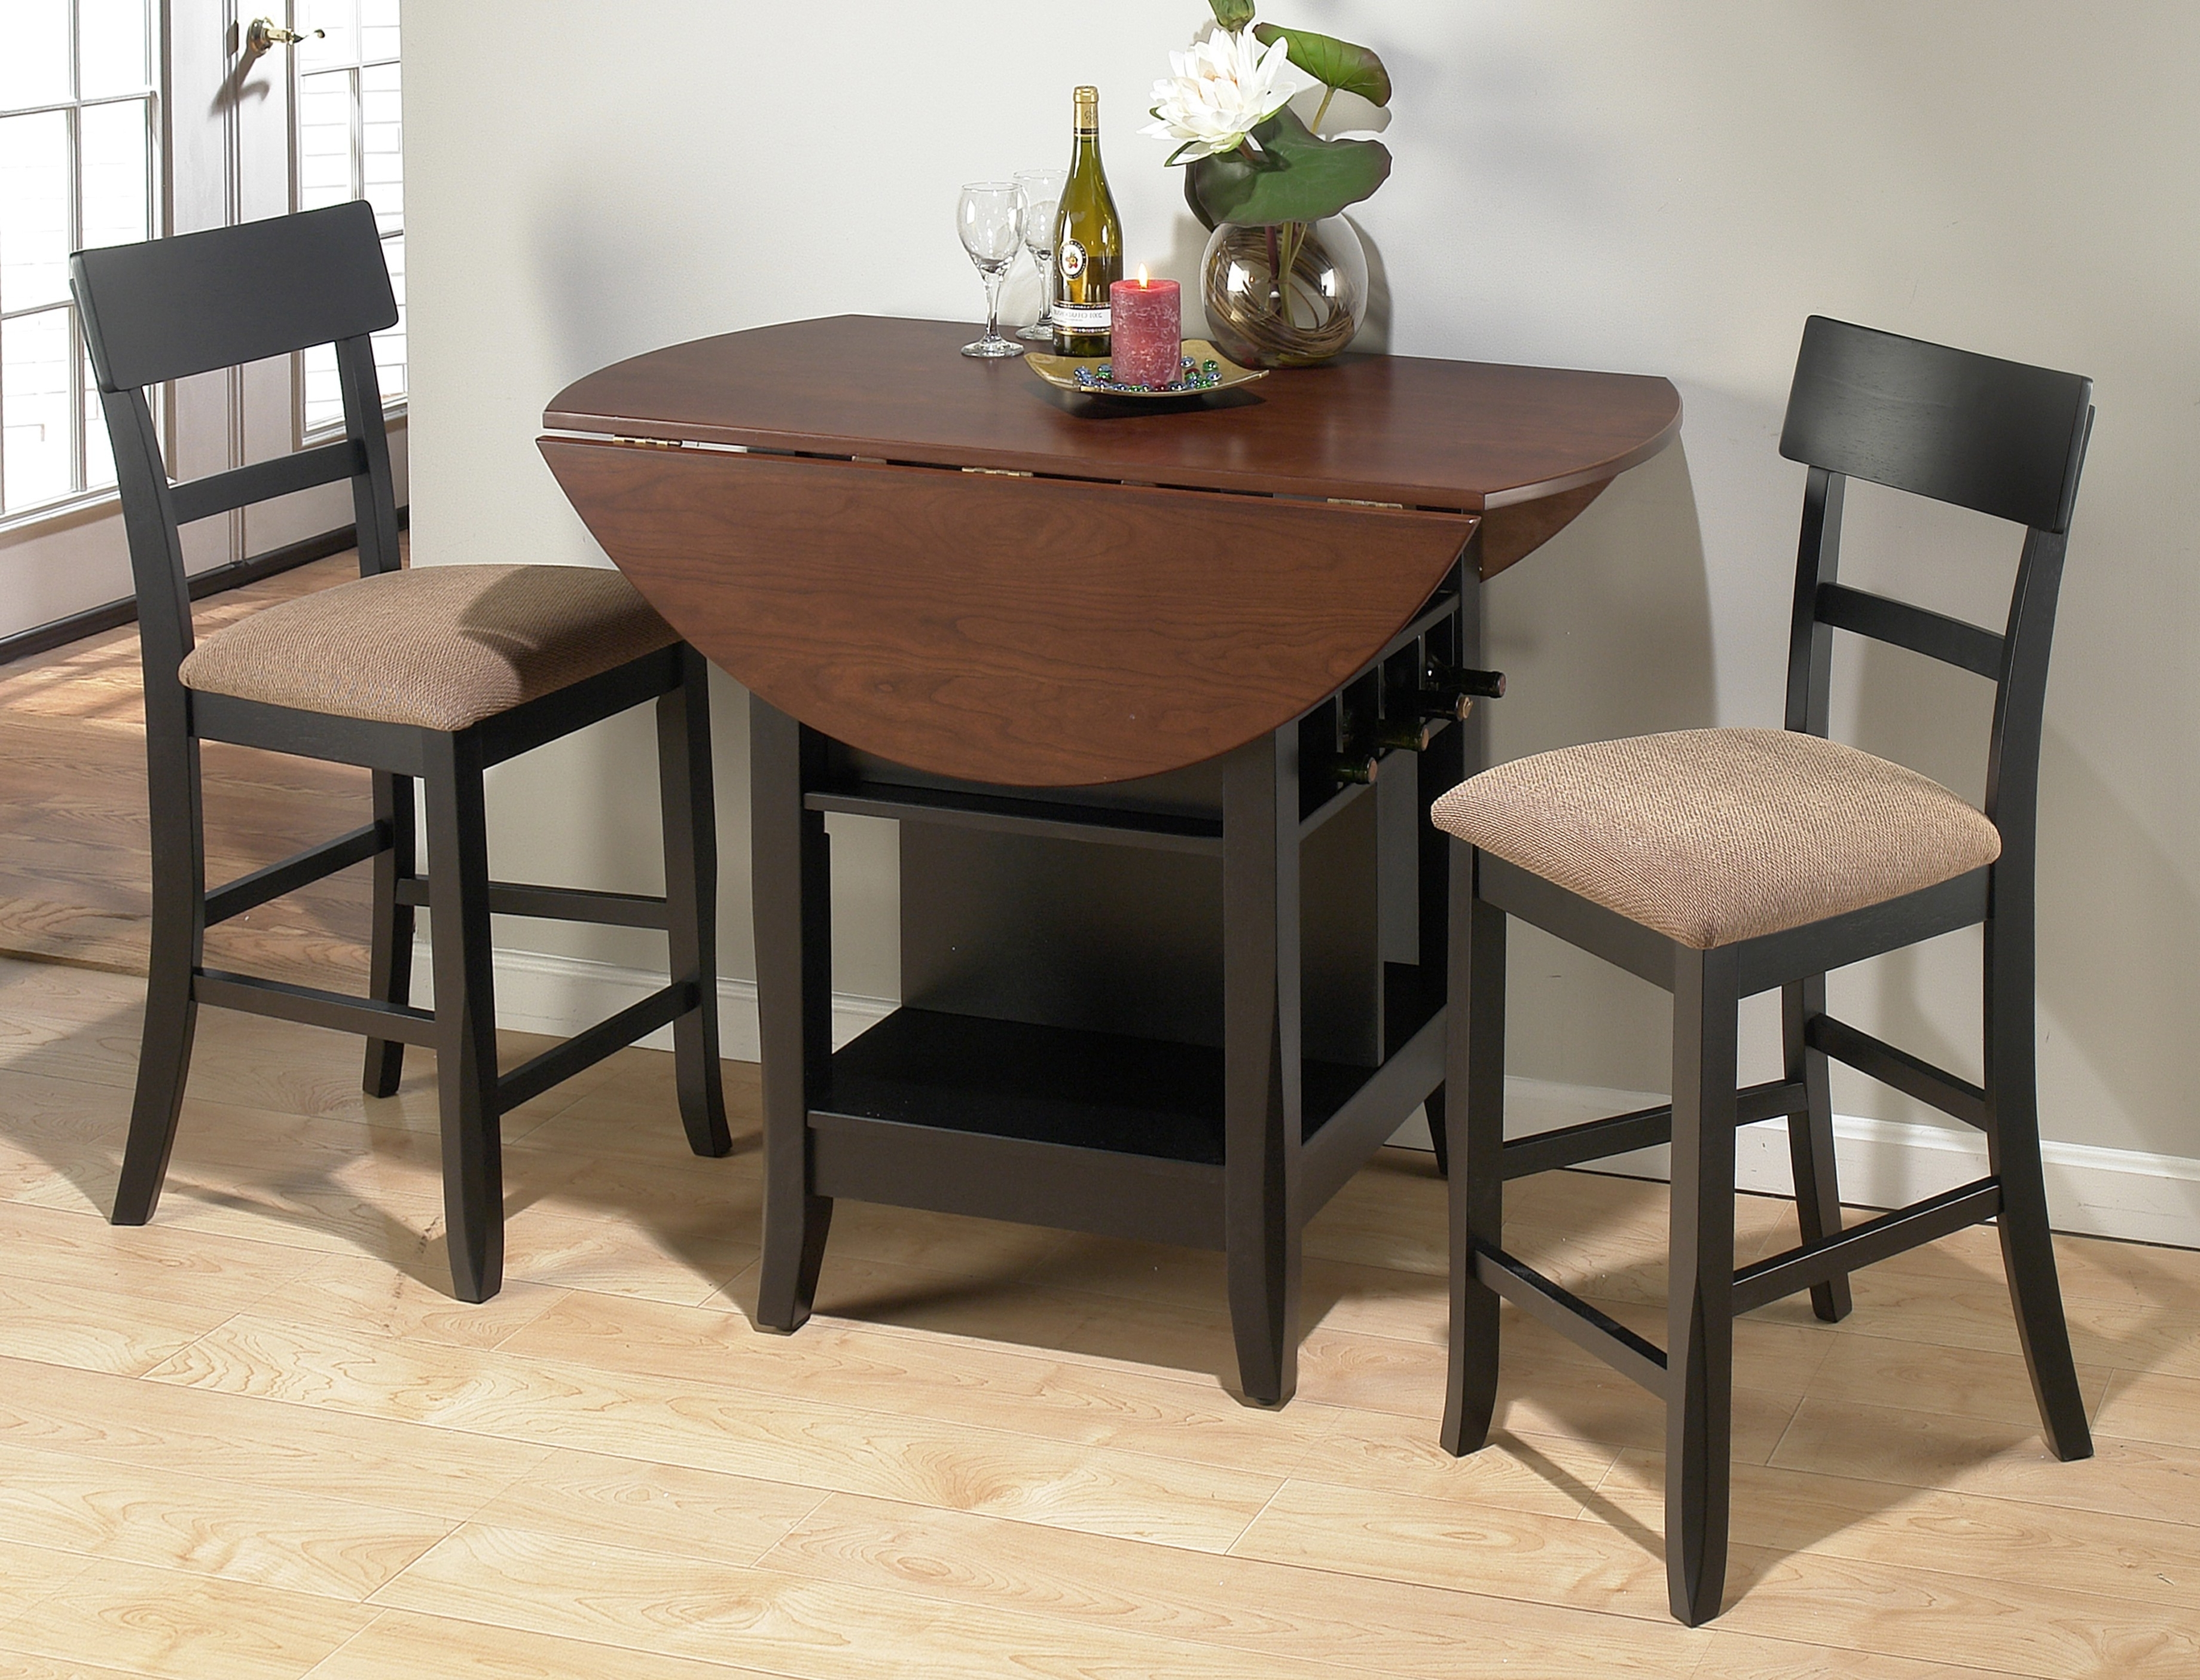 Dining Room Dining Sets For Small Rooms Compact Dining Table Chairs With Most Current Compact Dining Tables (View 13 of 25)